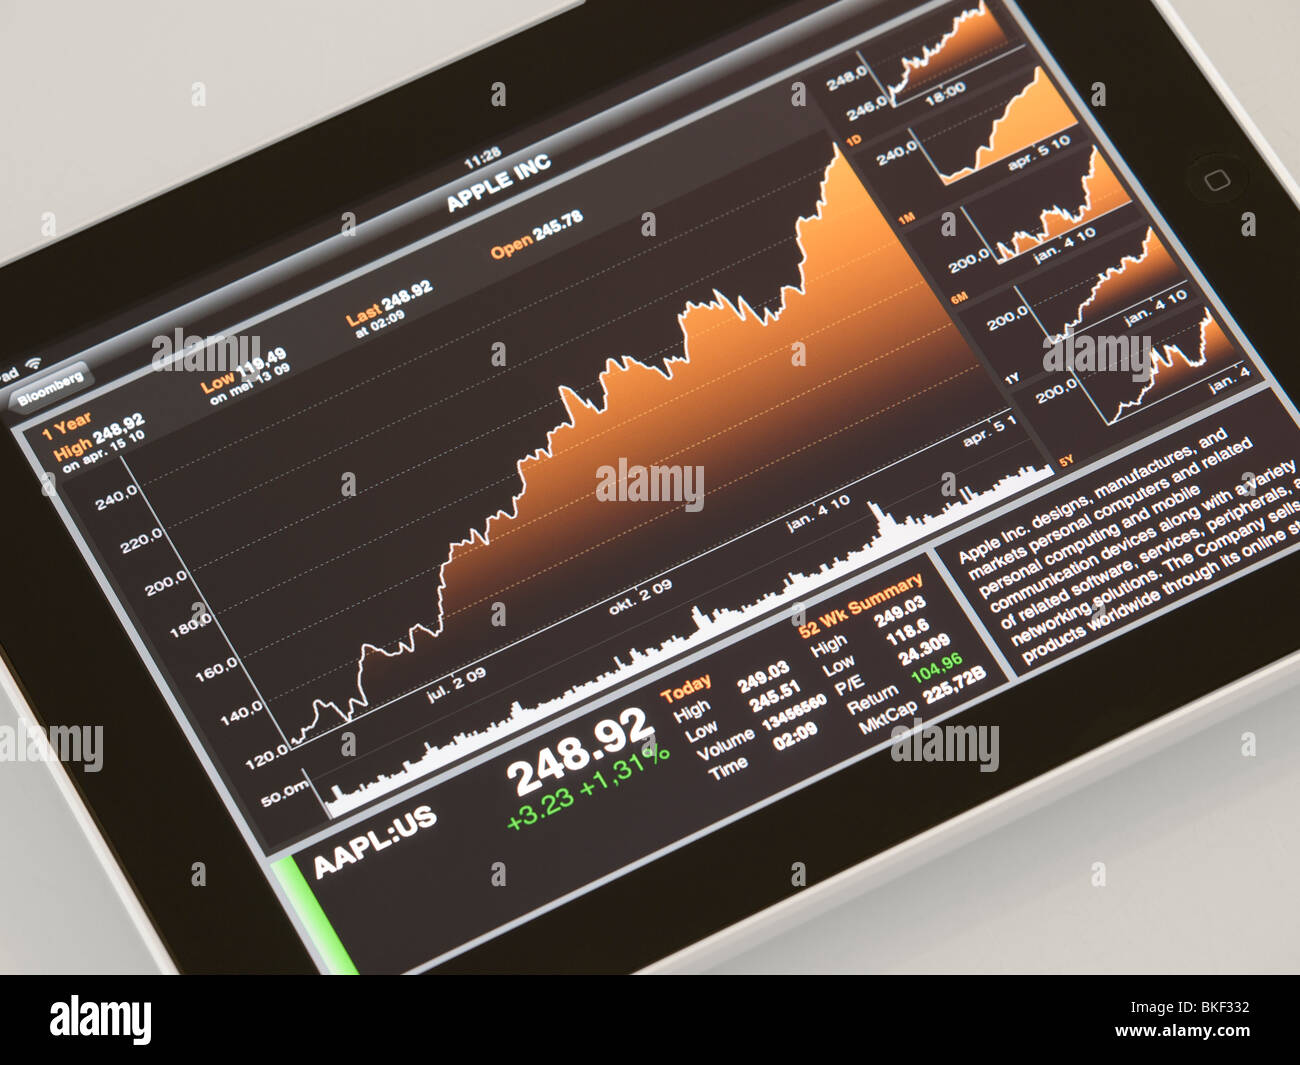 Apple iPad with Bloomberg app on screen, showing AAPL shares doubling in value in the last year. - Stock Image